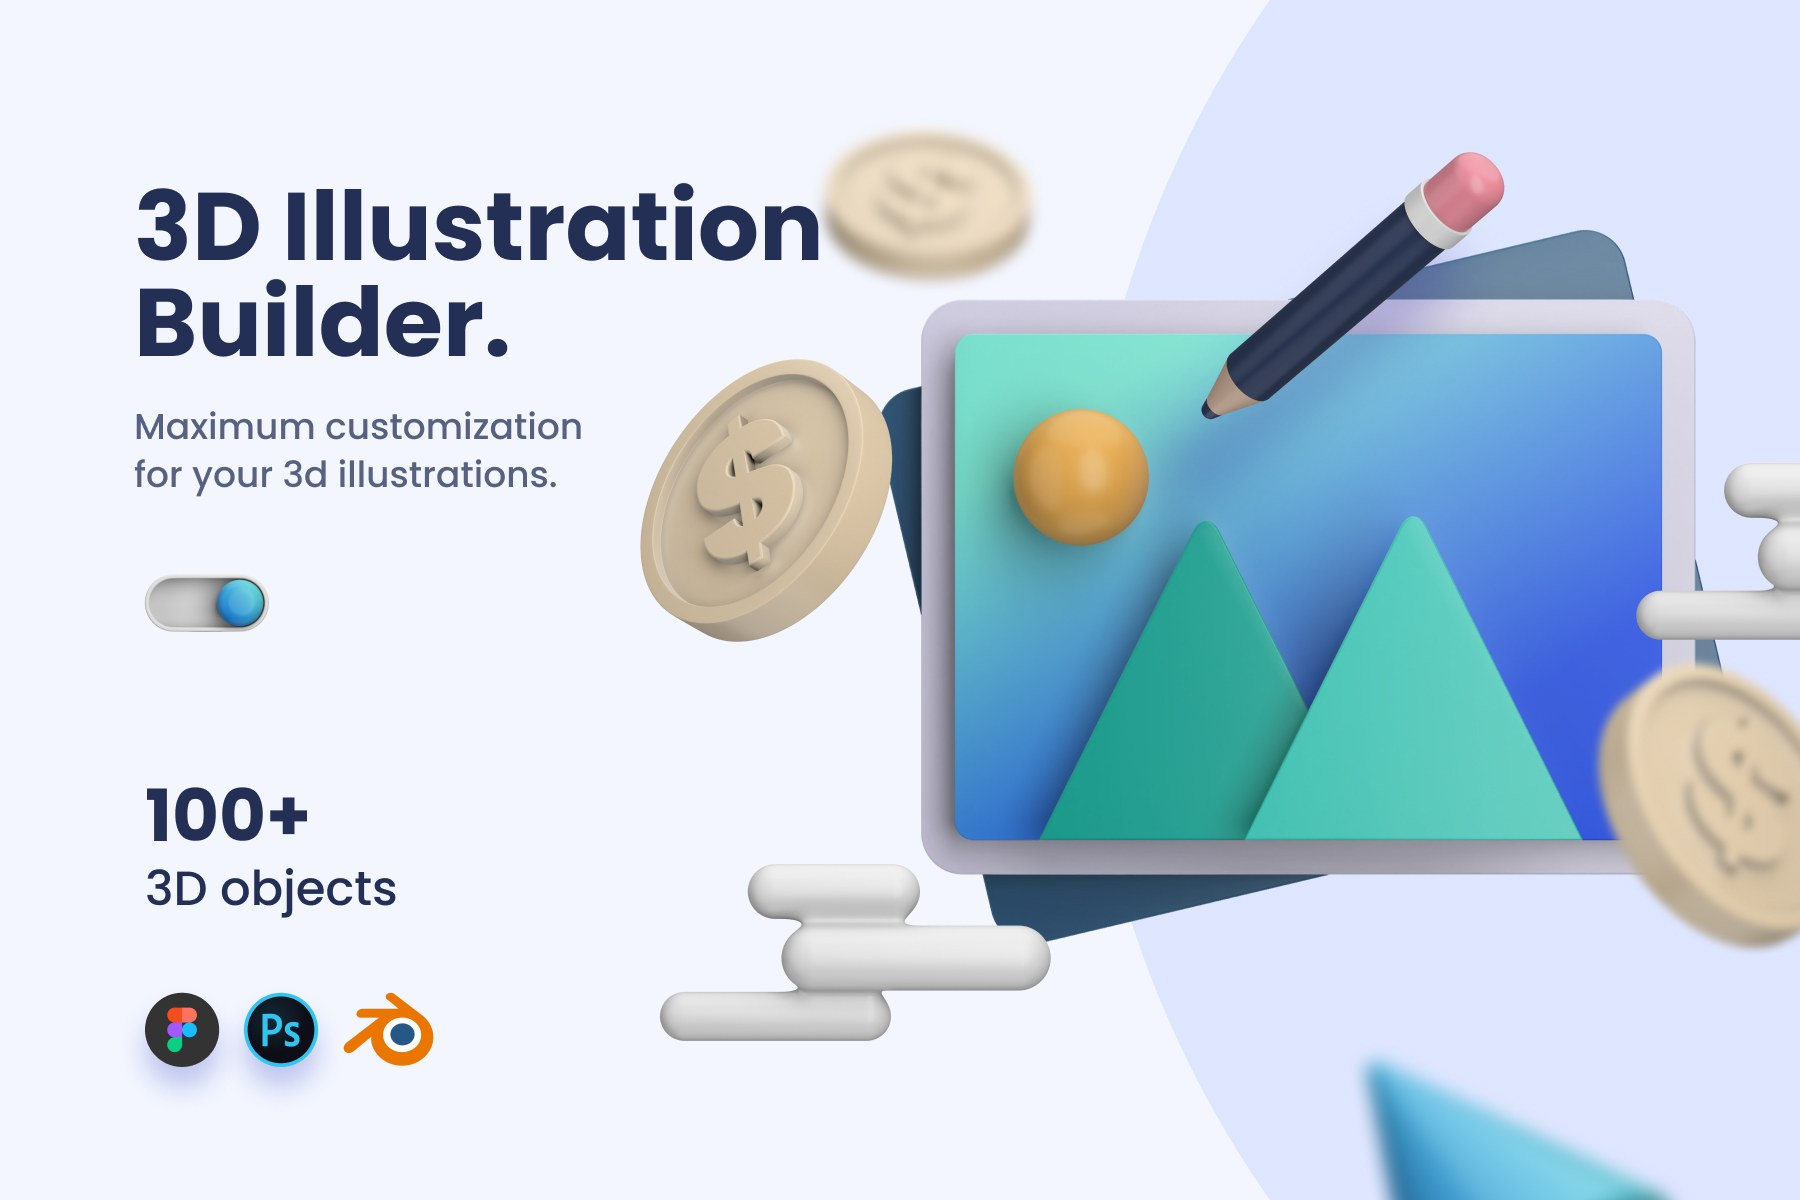 3D Illustration Builder